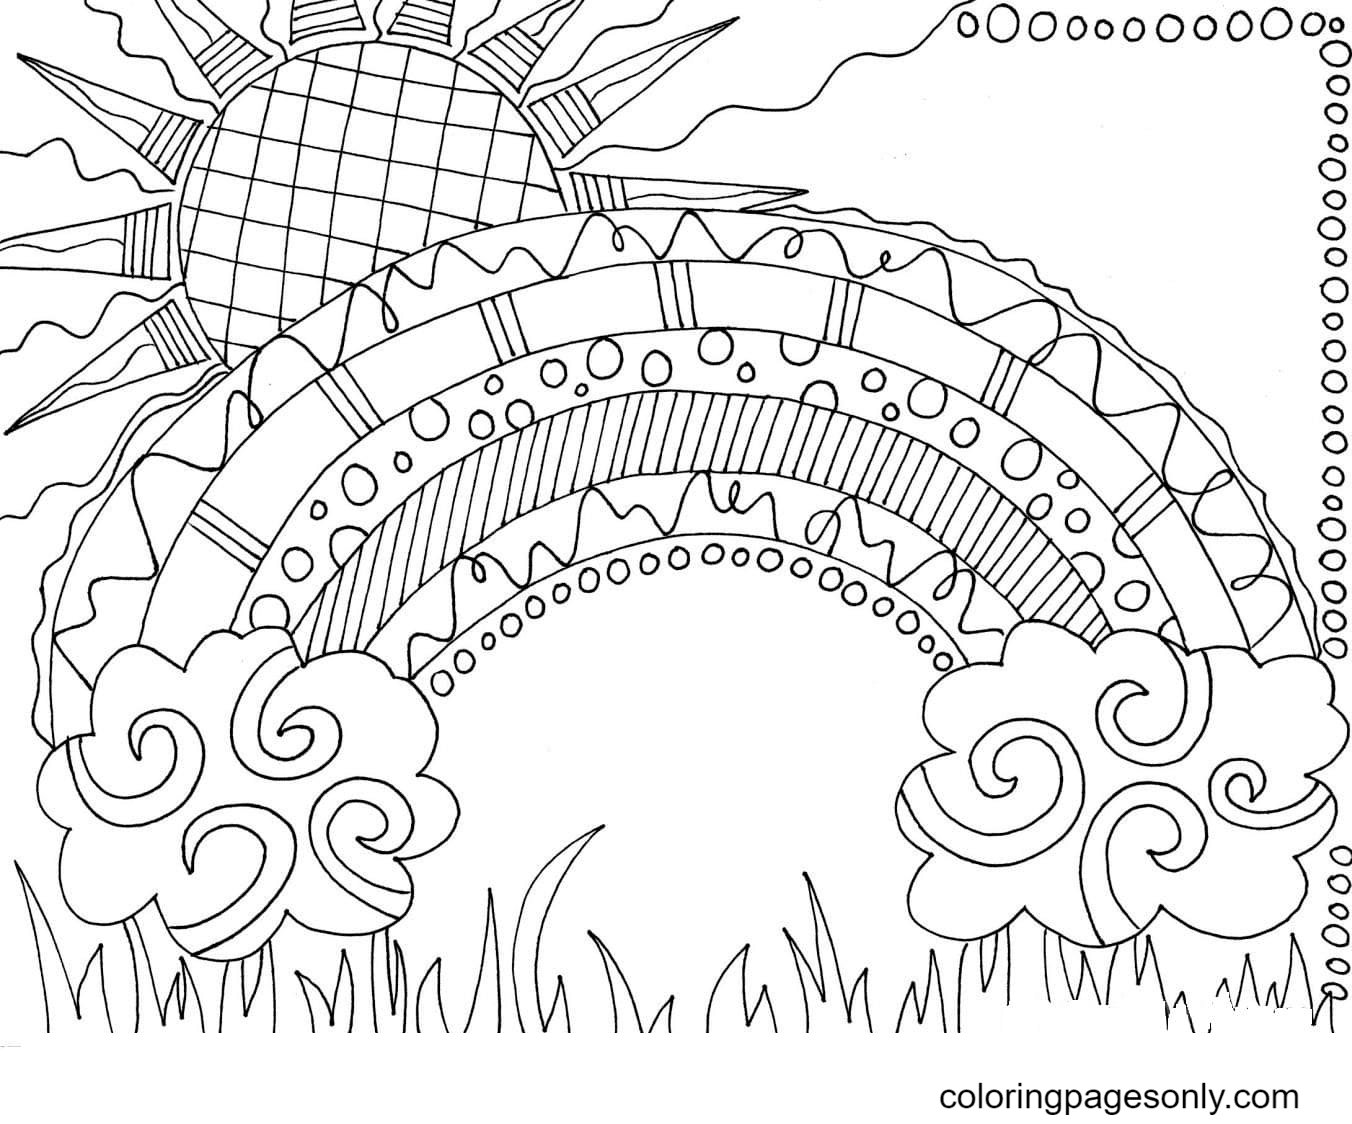 Rainbow with patterns Coloring Page